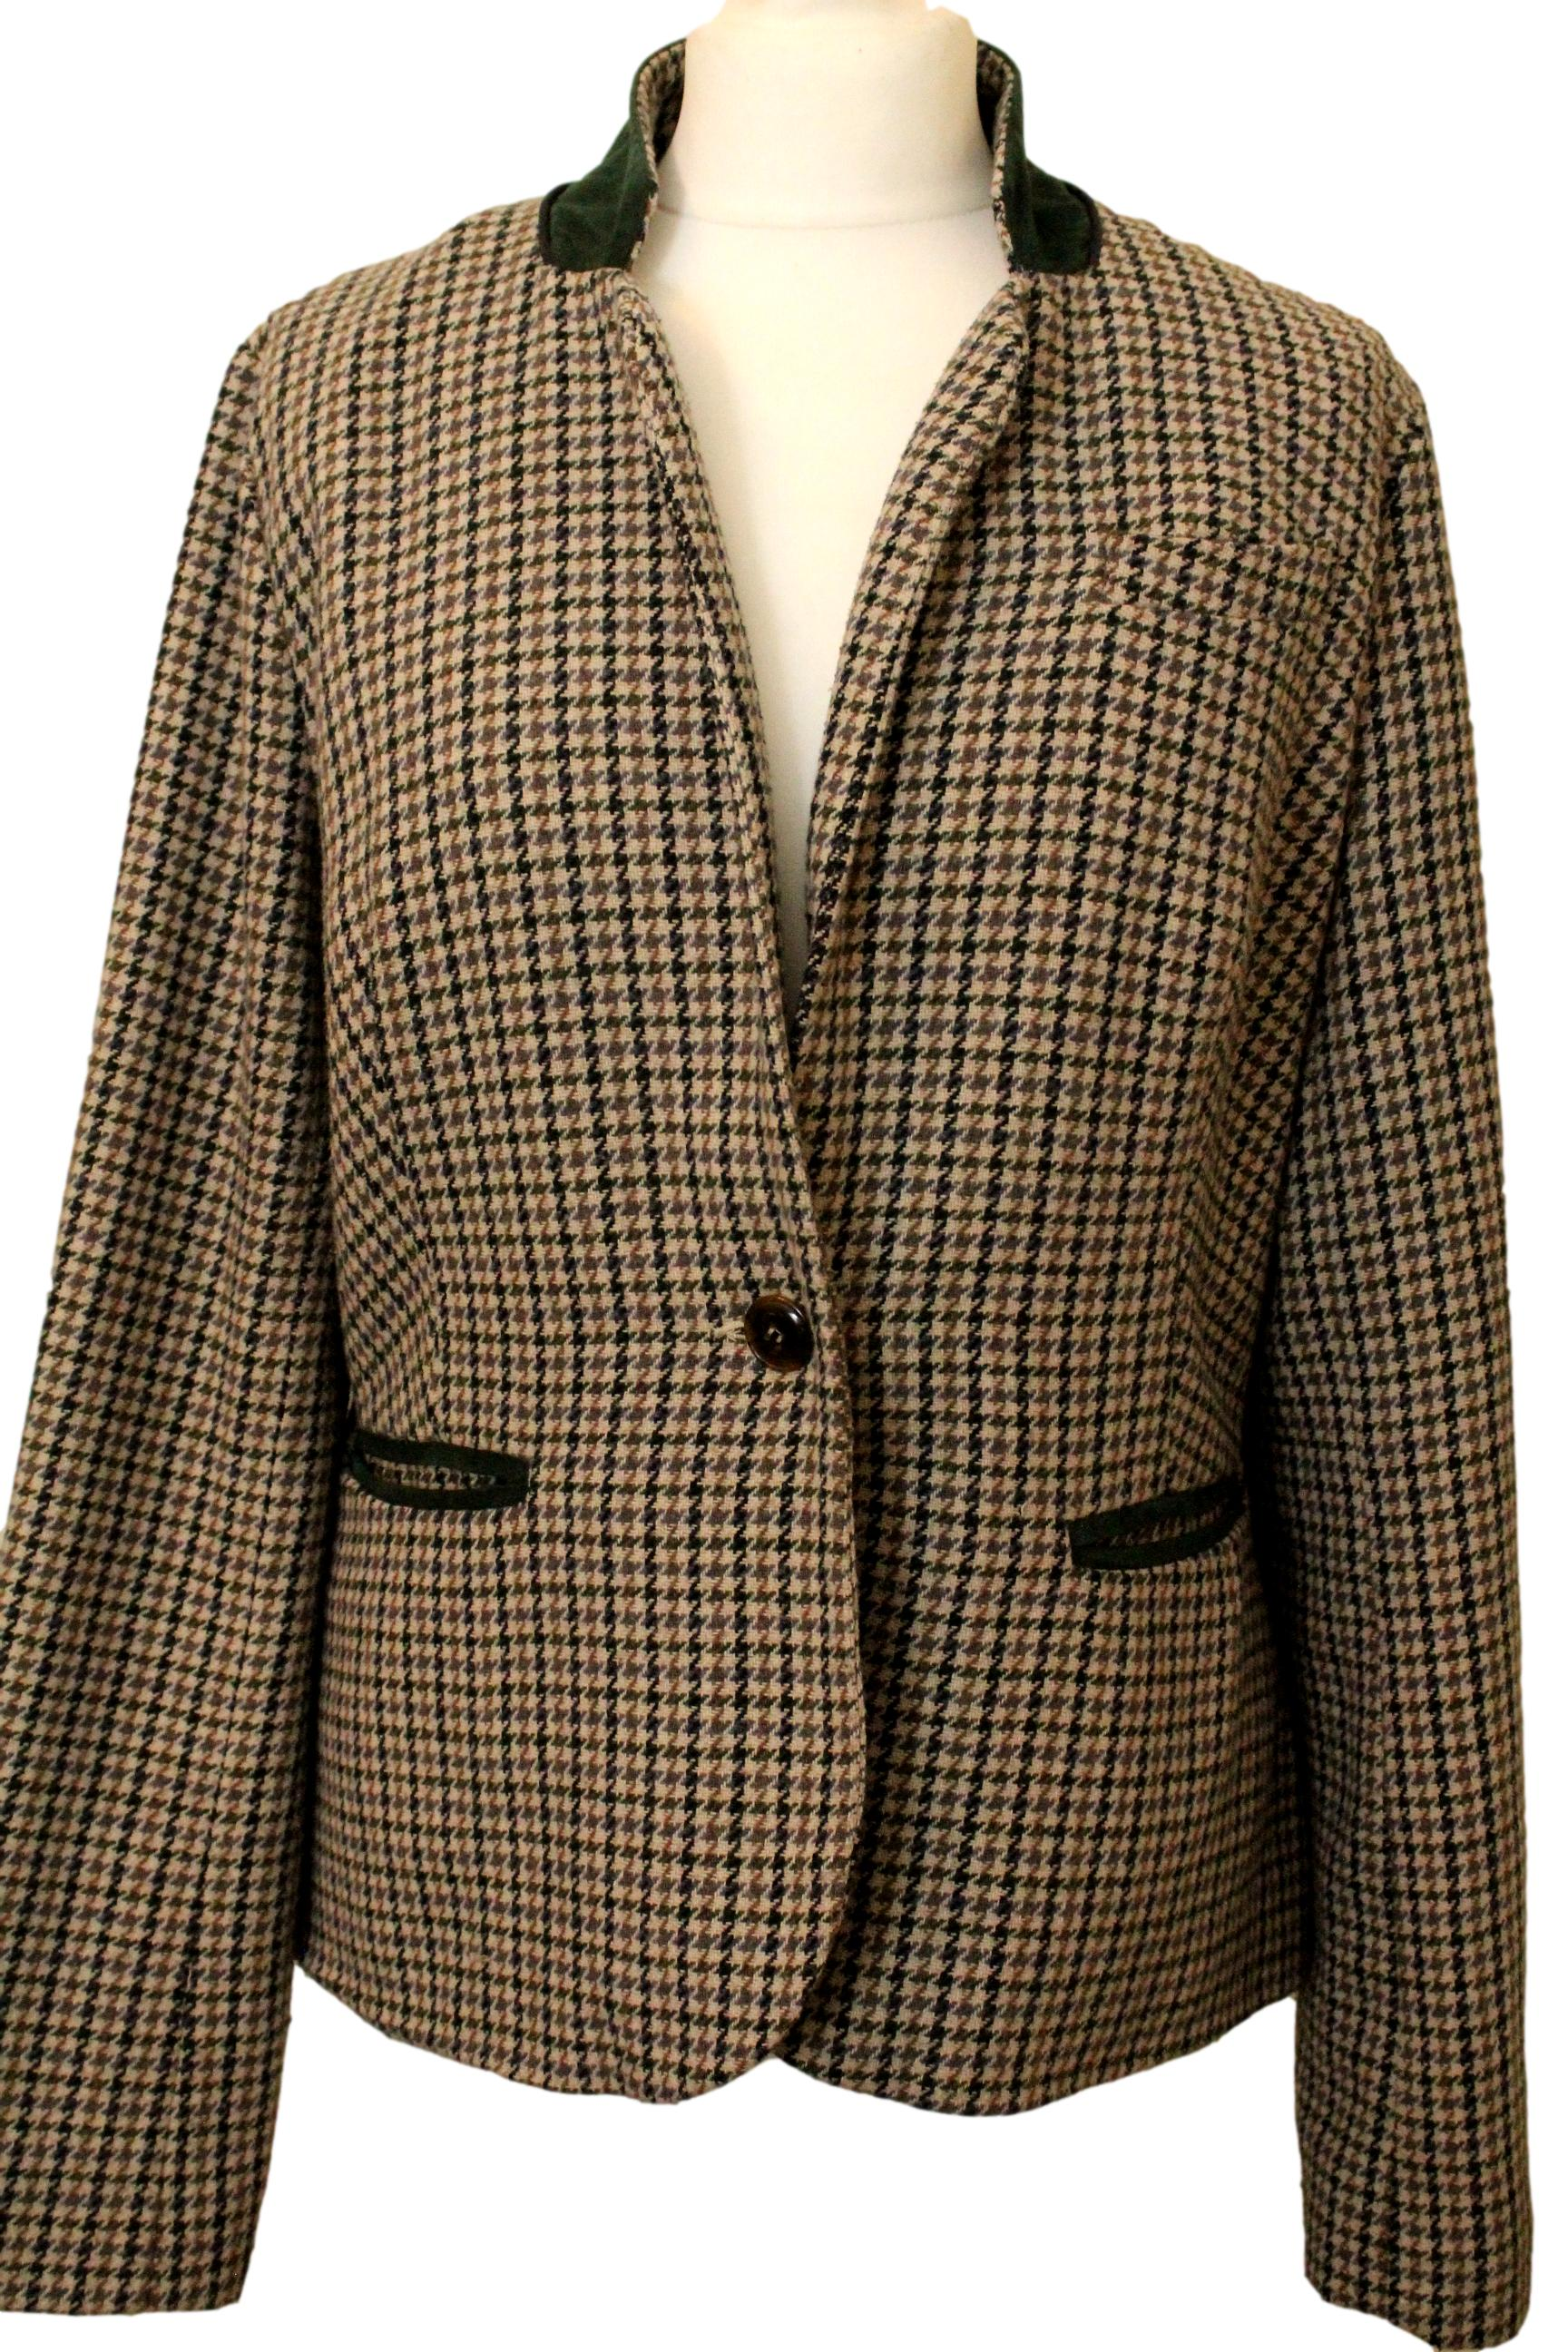 Tweed Jackets Vintage Tweed Used Barbour Used Belstaff Country Wax And Retro Clothing